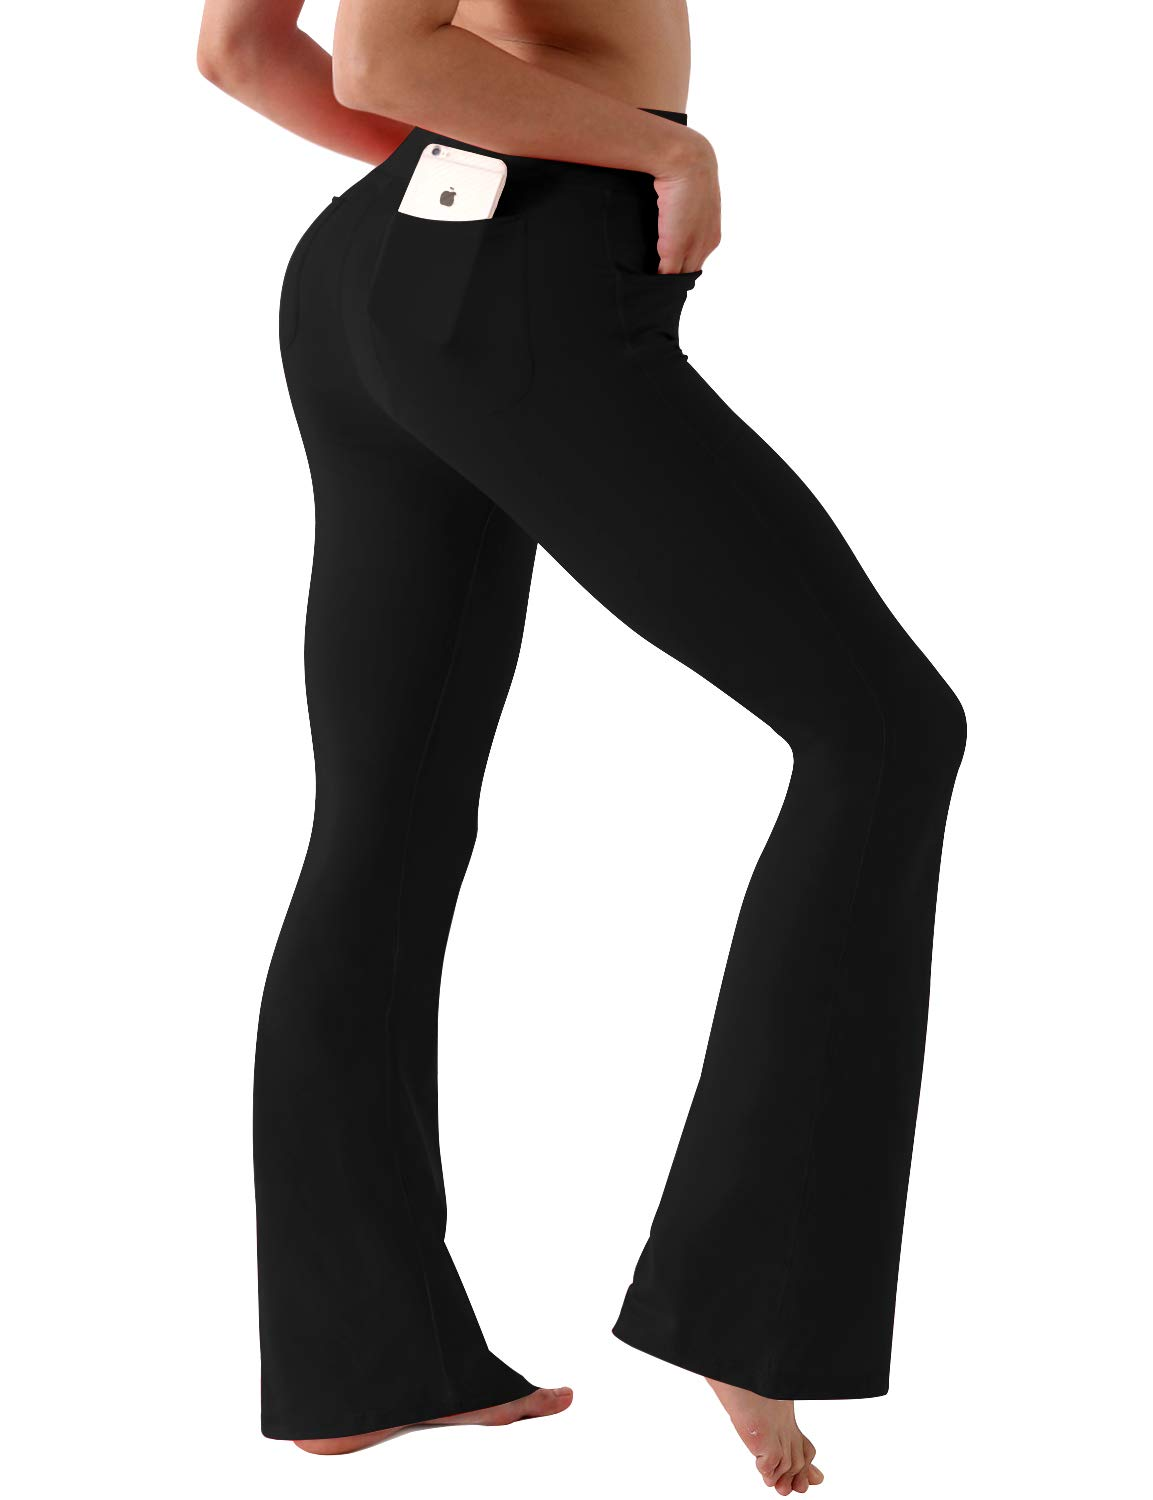 BUBBLELIME Bootleg Yoga Pants Out Pocket High Compression Running Pants High Waist Workout Pants Nylon Span UPF30+, Black (75/25 Ns Out Pockets), Large ( 35''inseam ) by BUBBLELIME